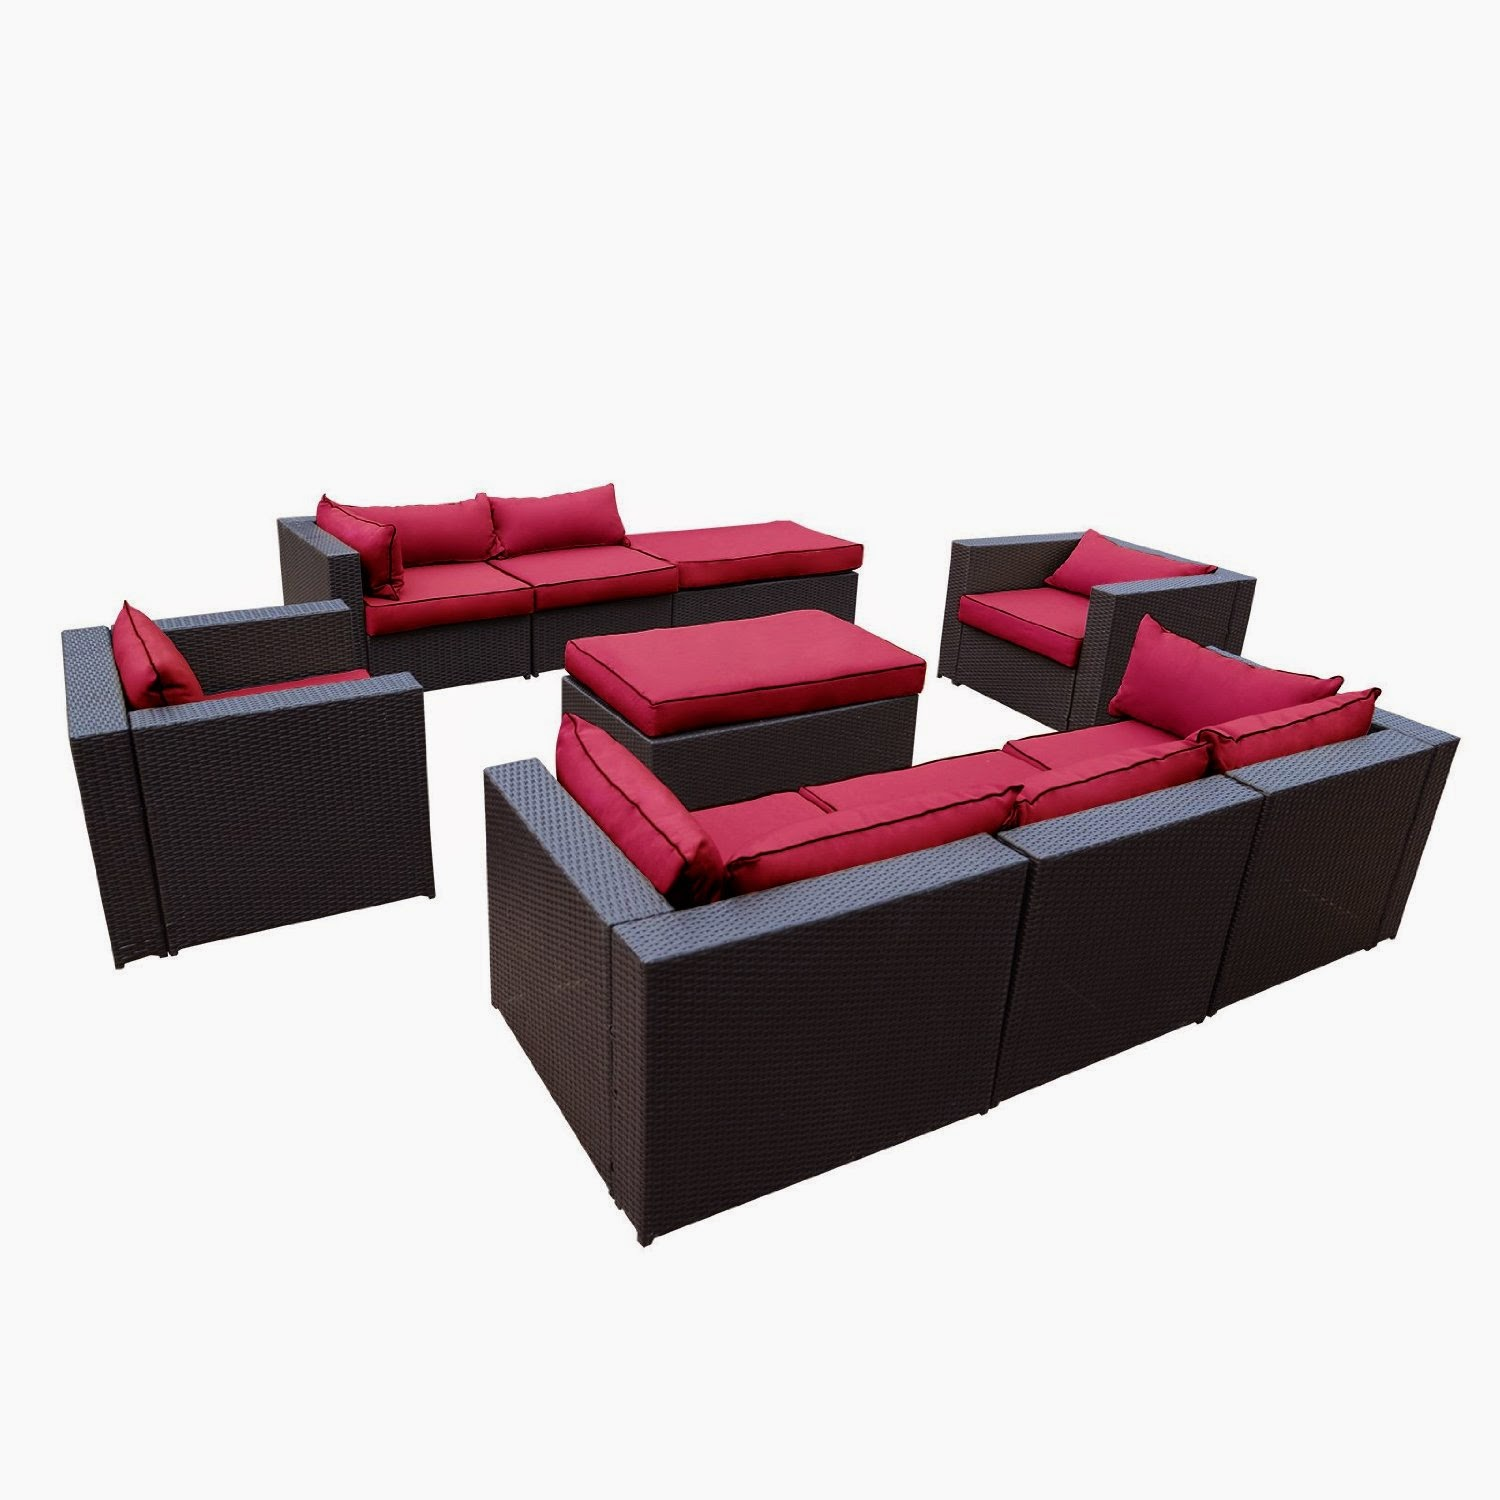 Outdoor Rattan Sofa Outdoor Patio Rattan Wicker Furniture Sectional Sofa